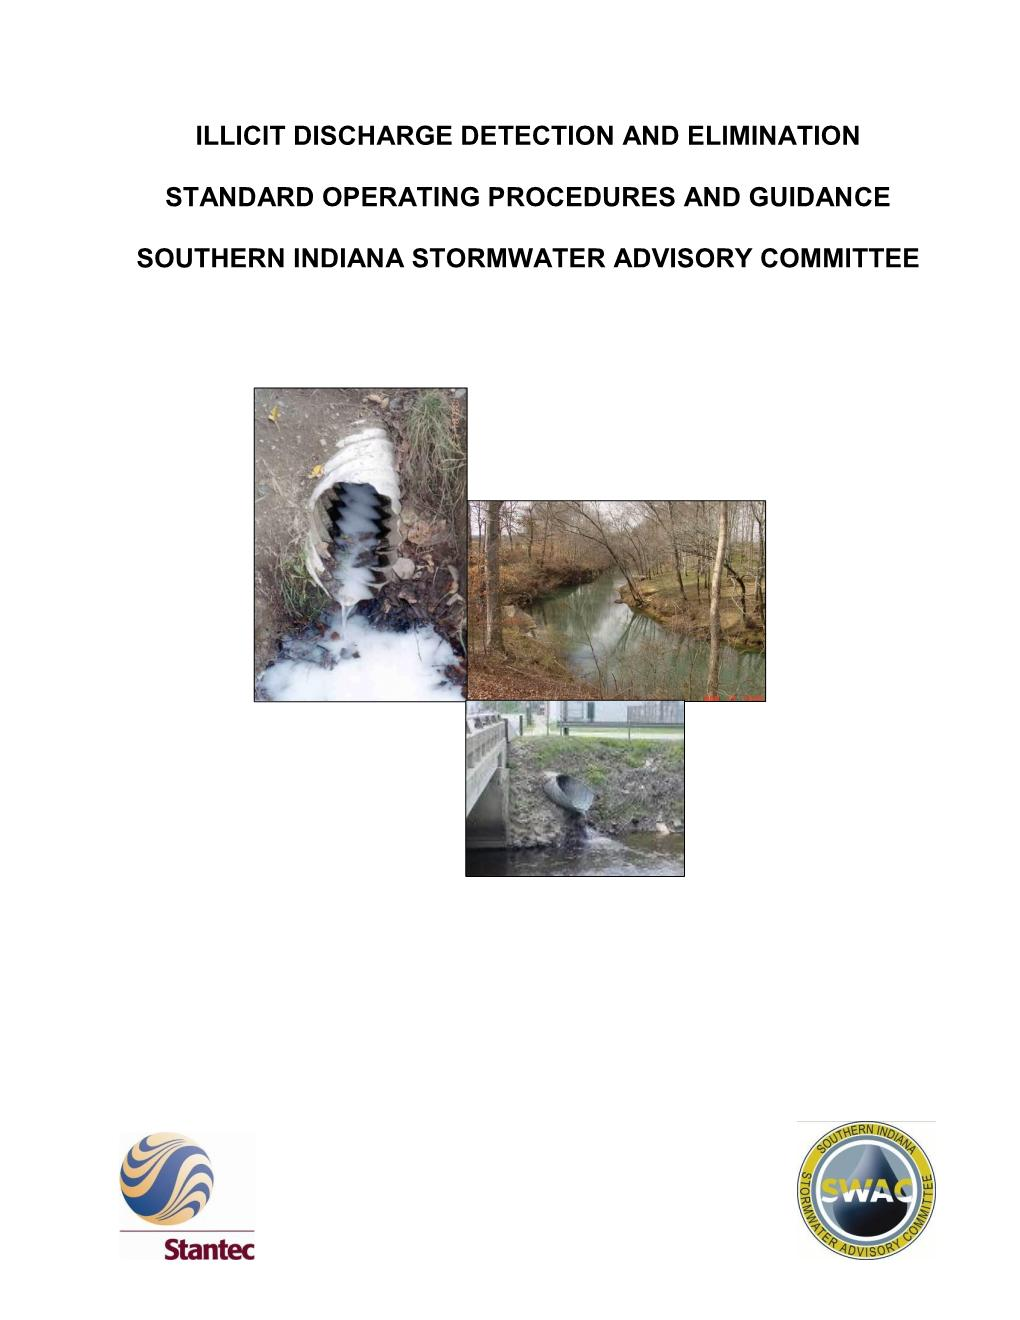 Illicit Discharge Detection and Elimination Standard Operating Procedures (SOP)